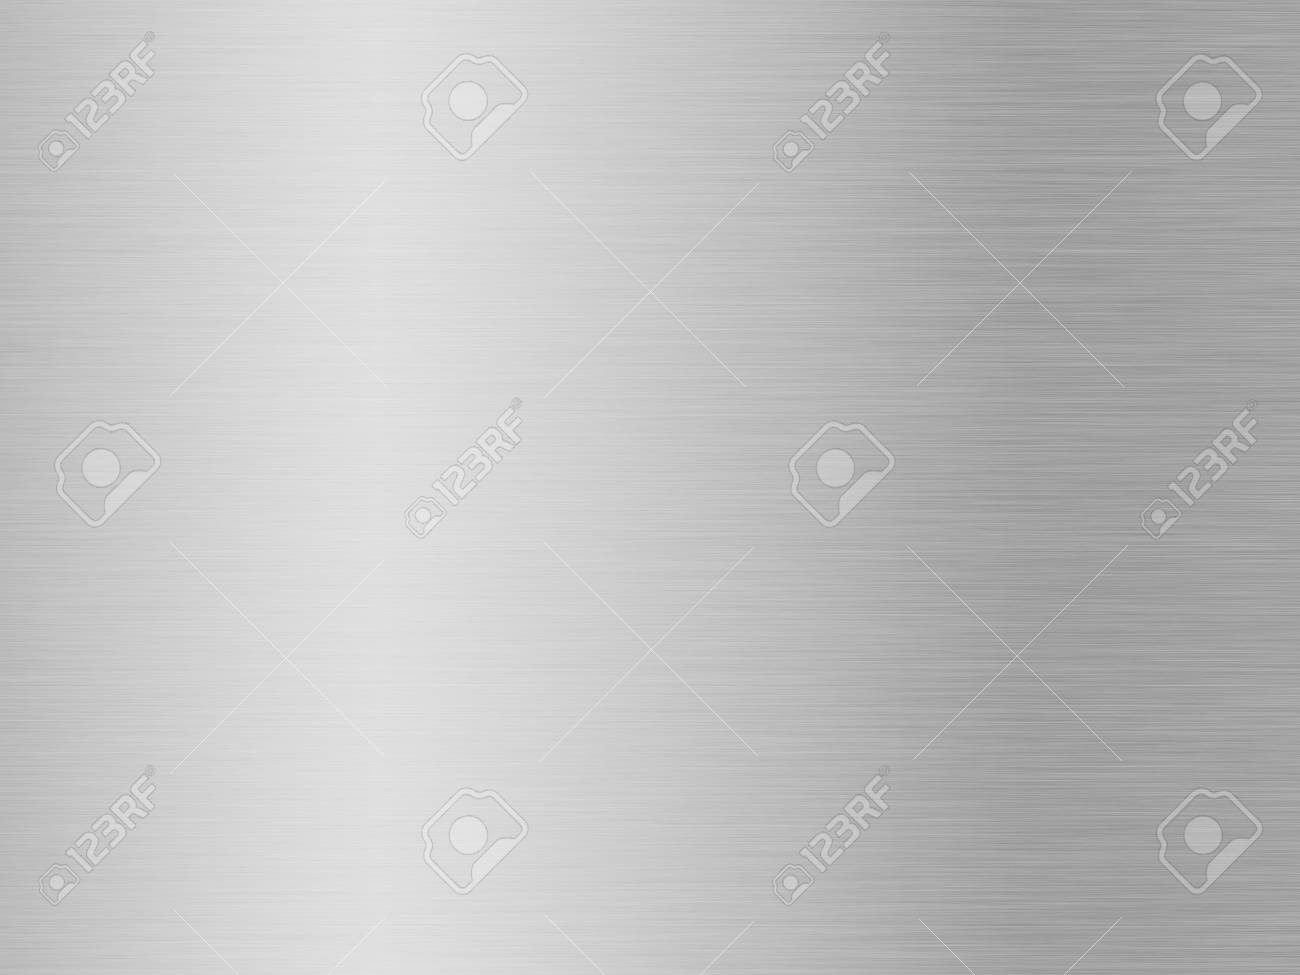 Stainless steel texture or metal texture background Banque d'images - 75076752